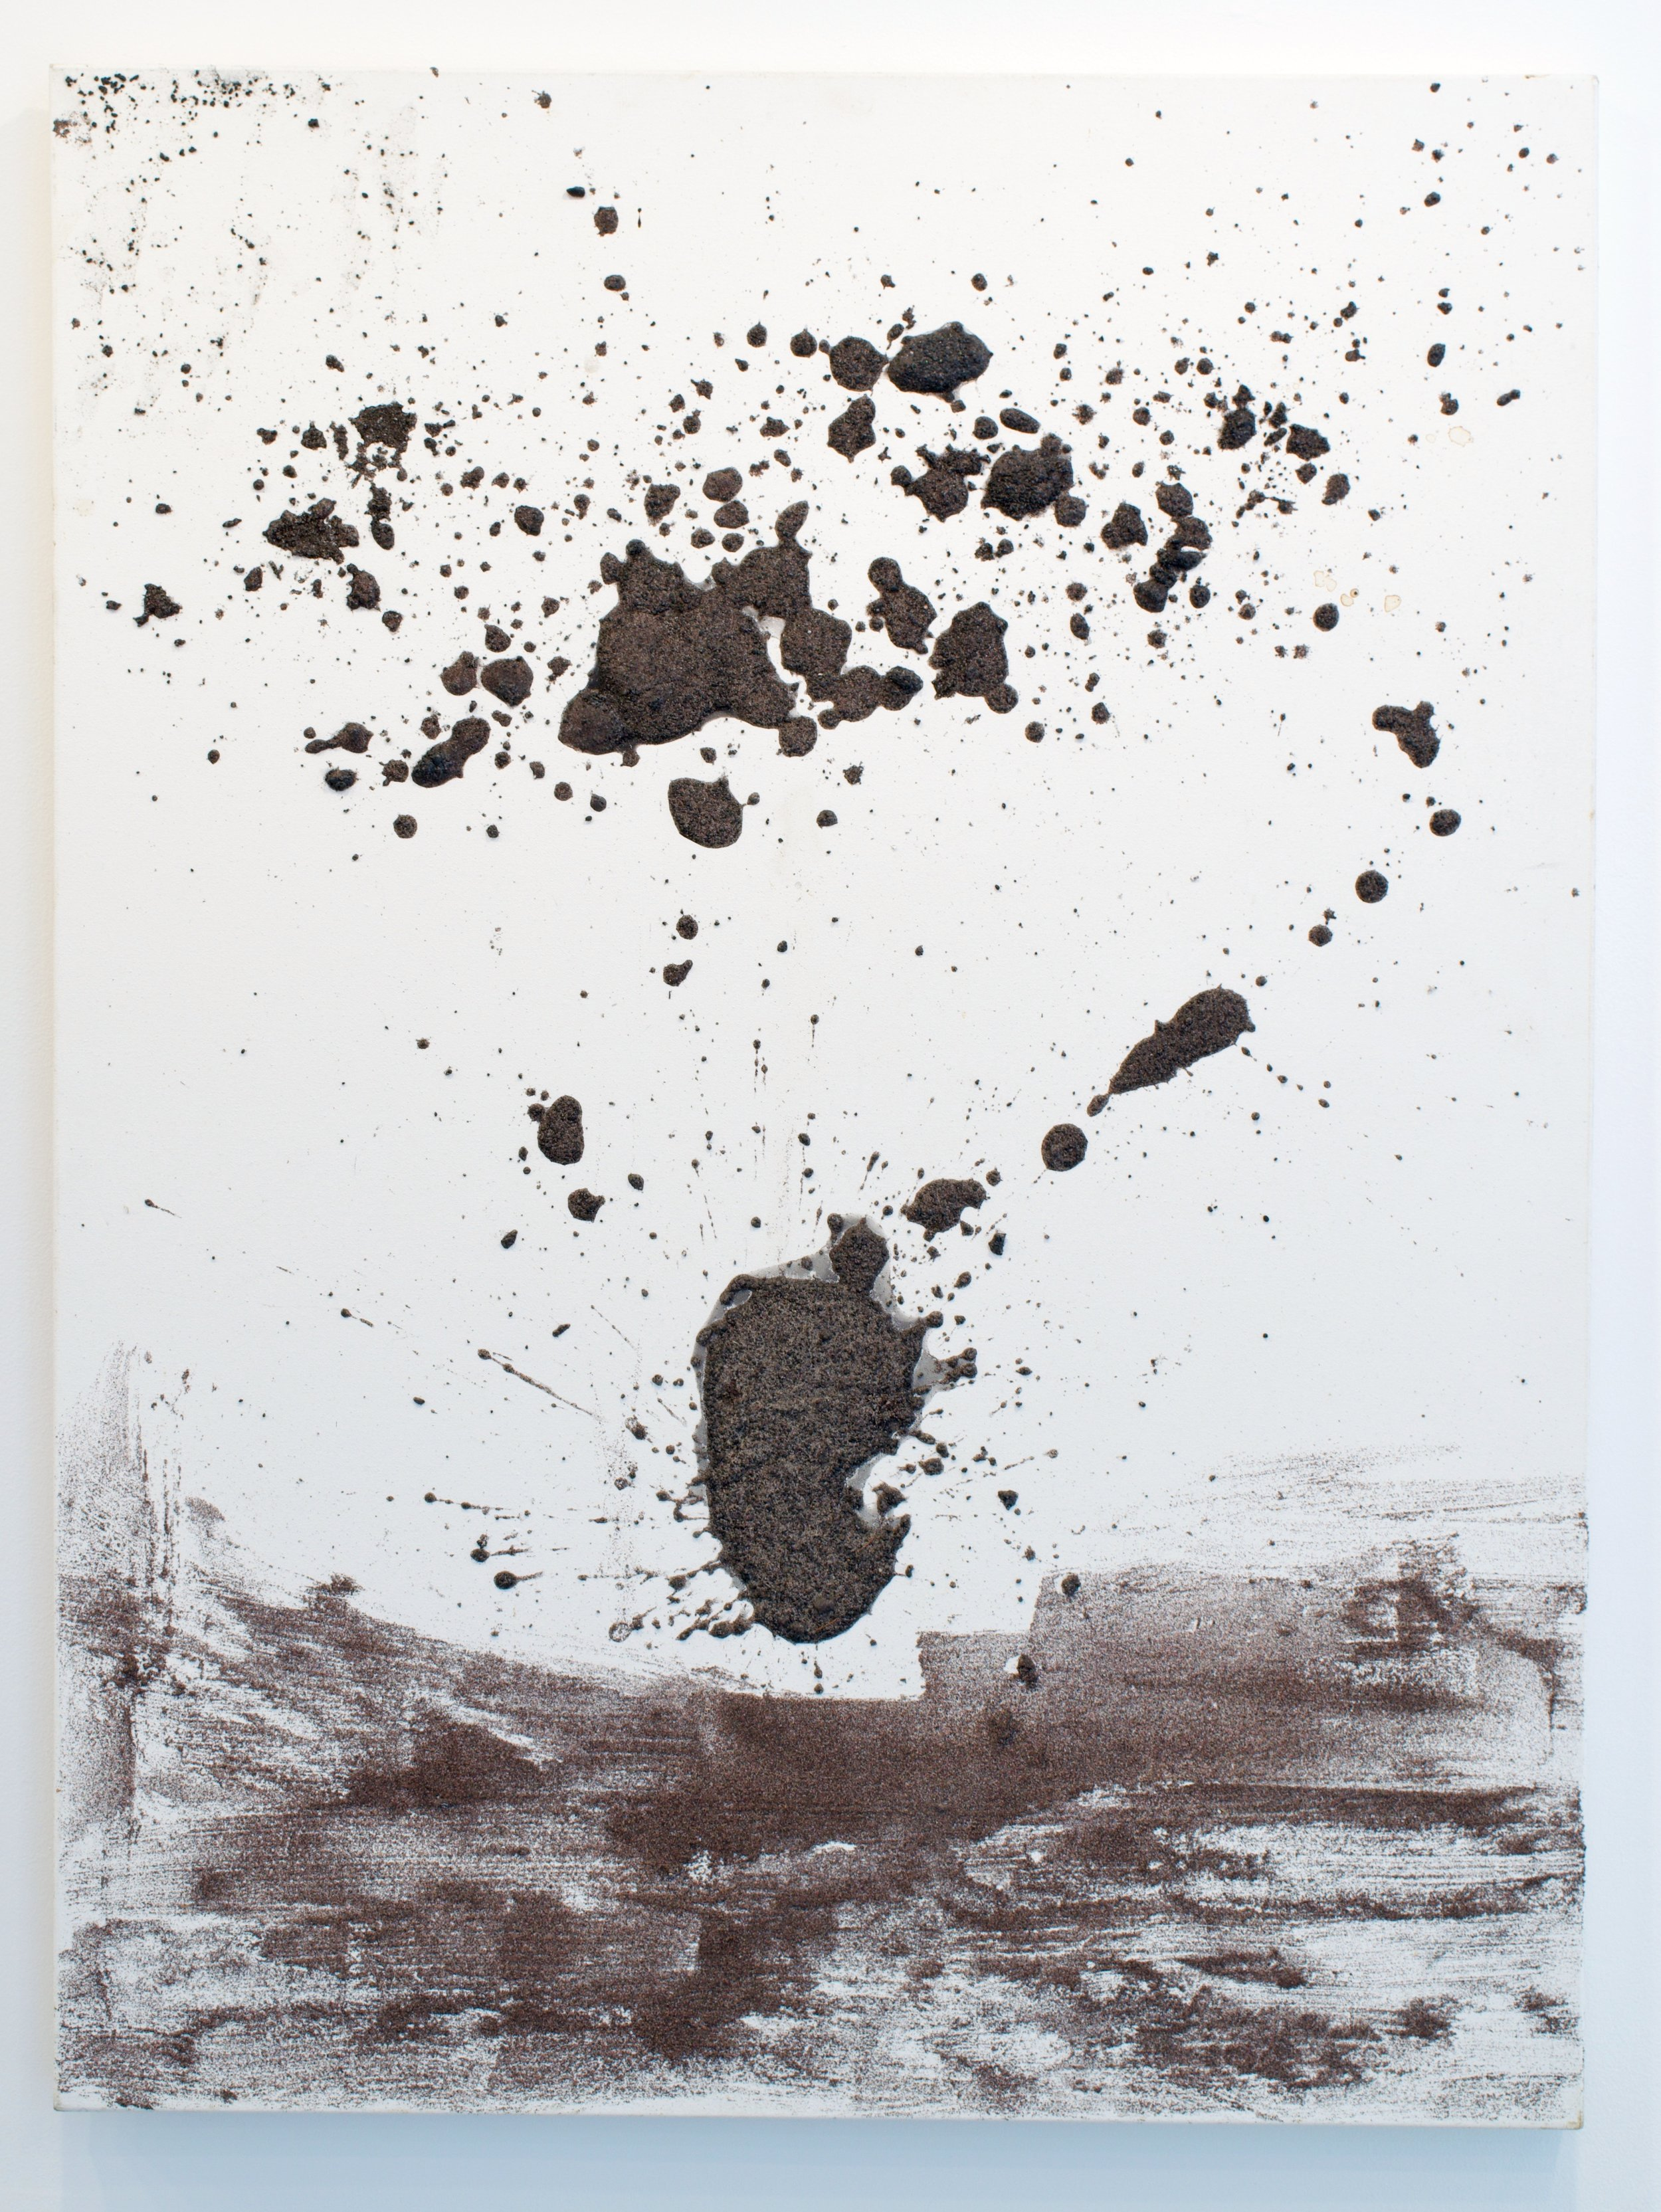 John Perreault, Untitled, 2014. Sand on canvas. 48x36 in.